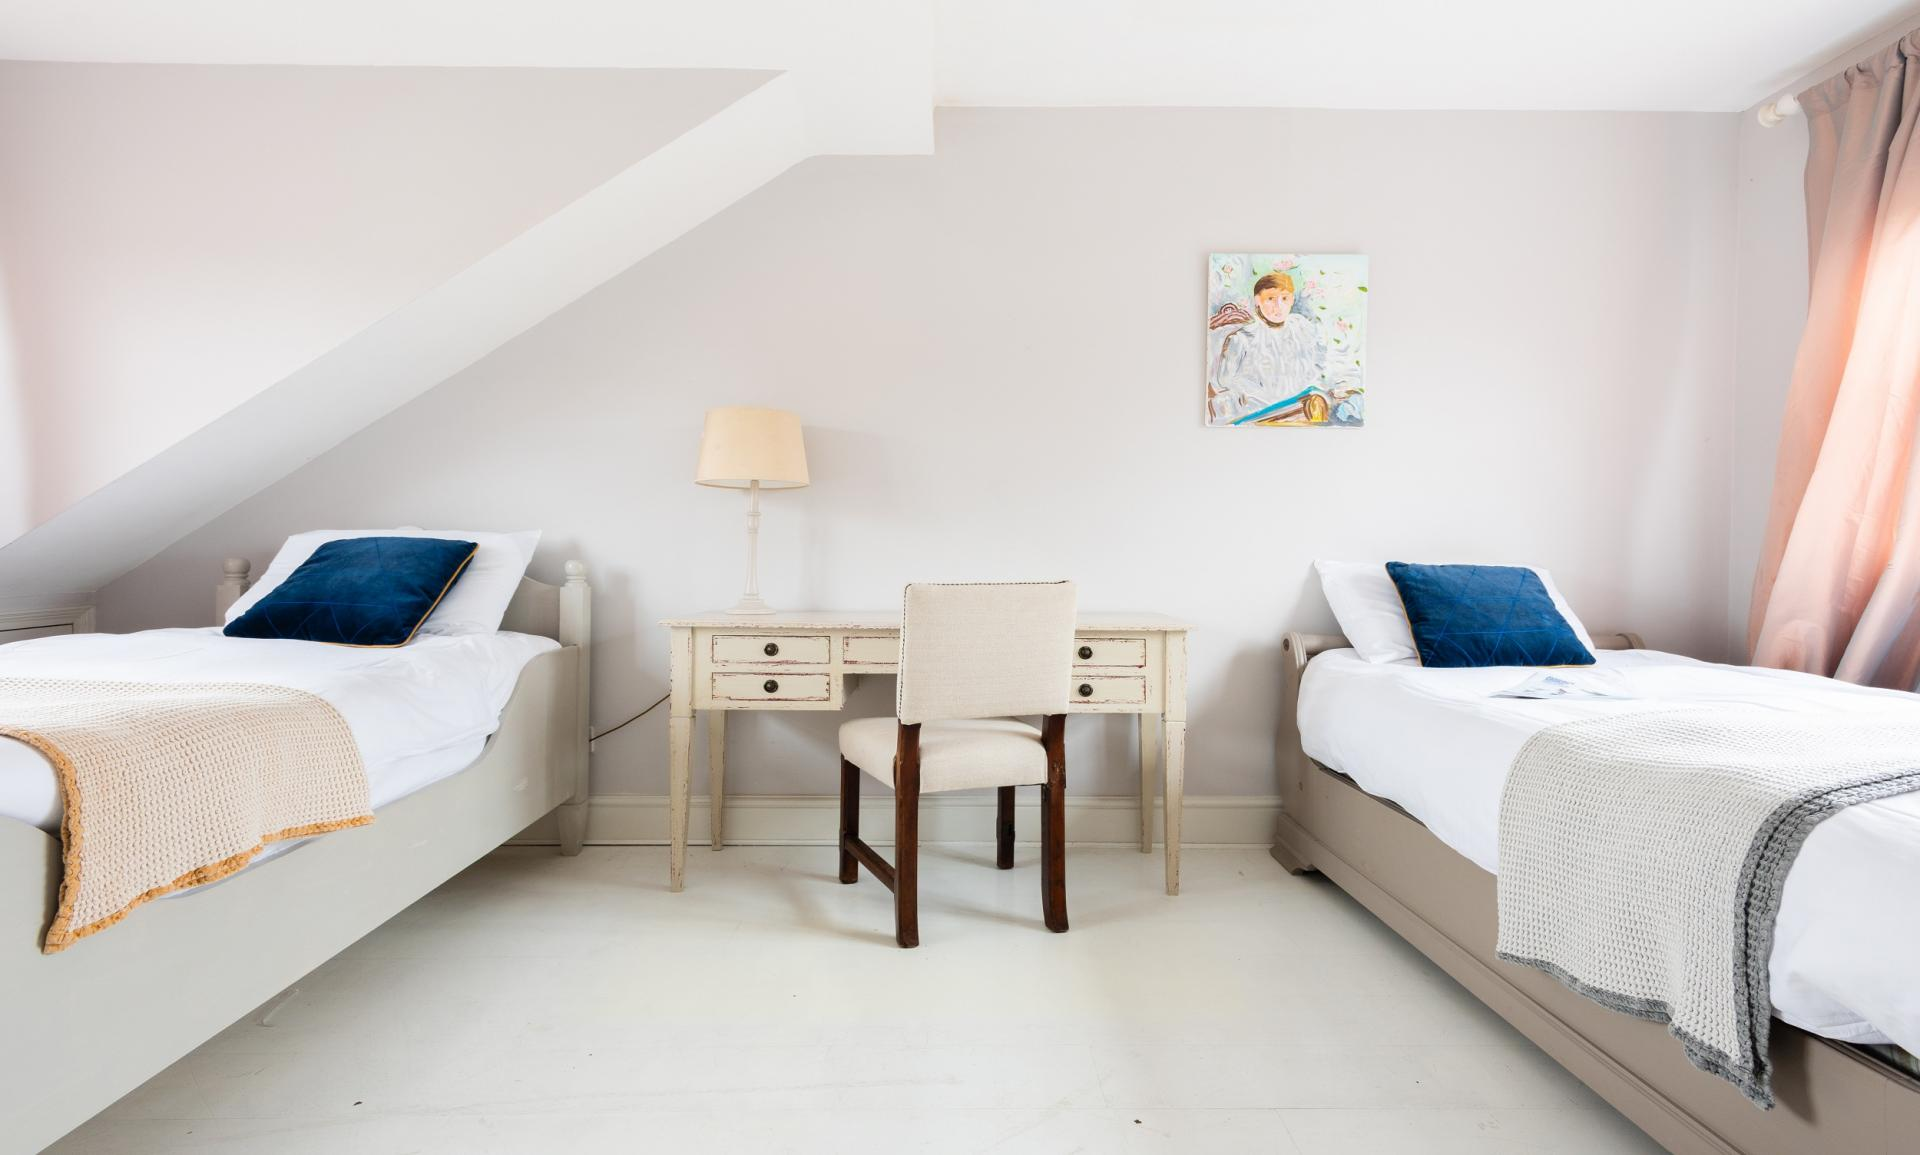 Beds at The Writer's Townhouse, Centre, Oxford - Citybase Apartments